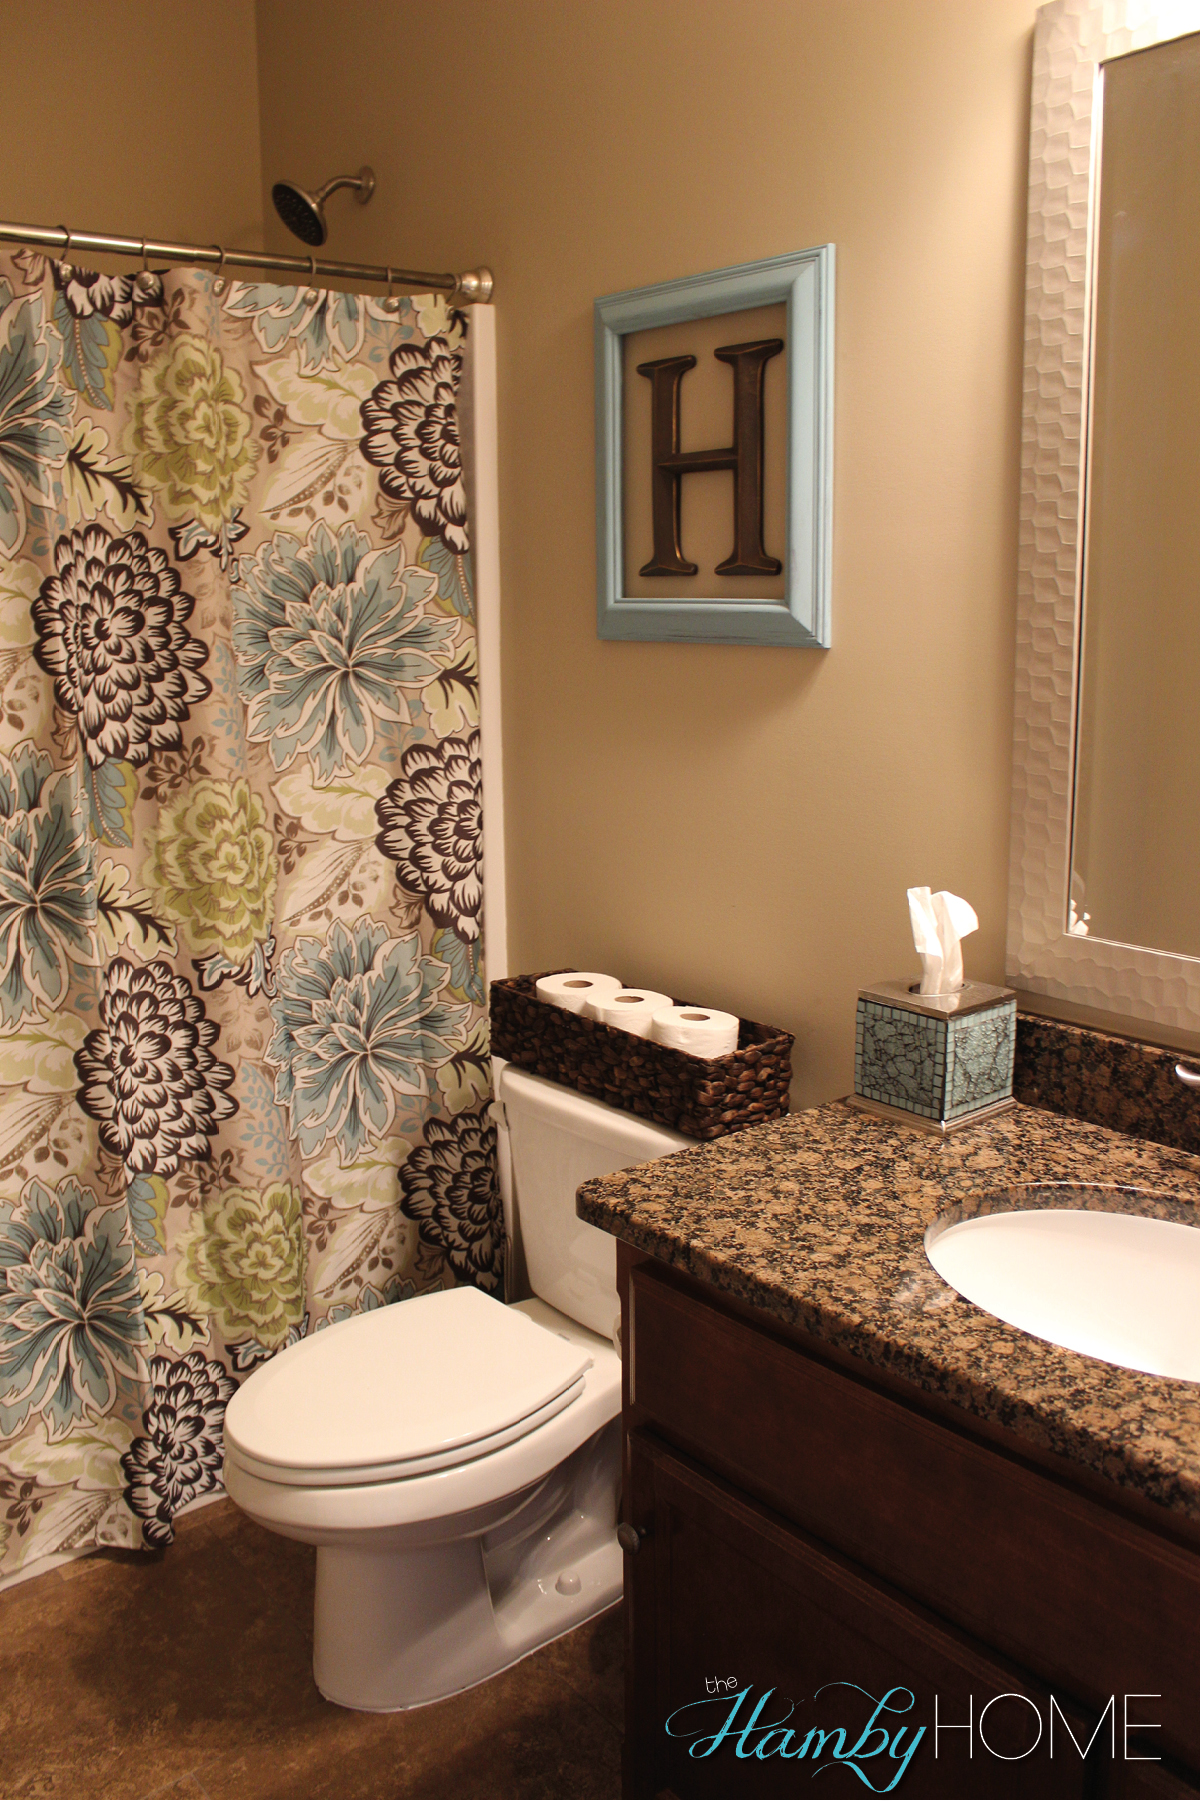 Tgif house tour guest bathroom the hamby home for Guest bathroom decorating ideas pictures